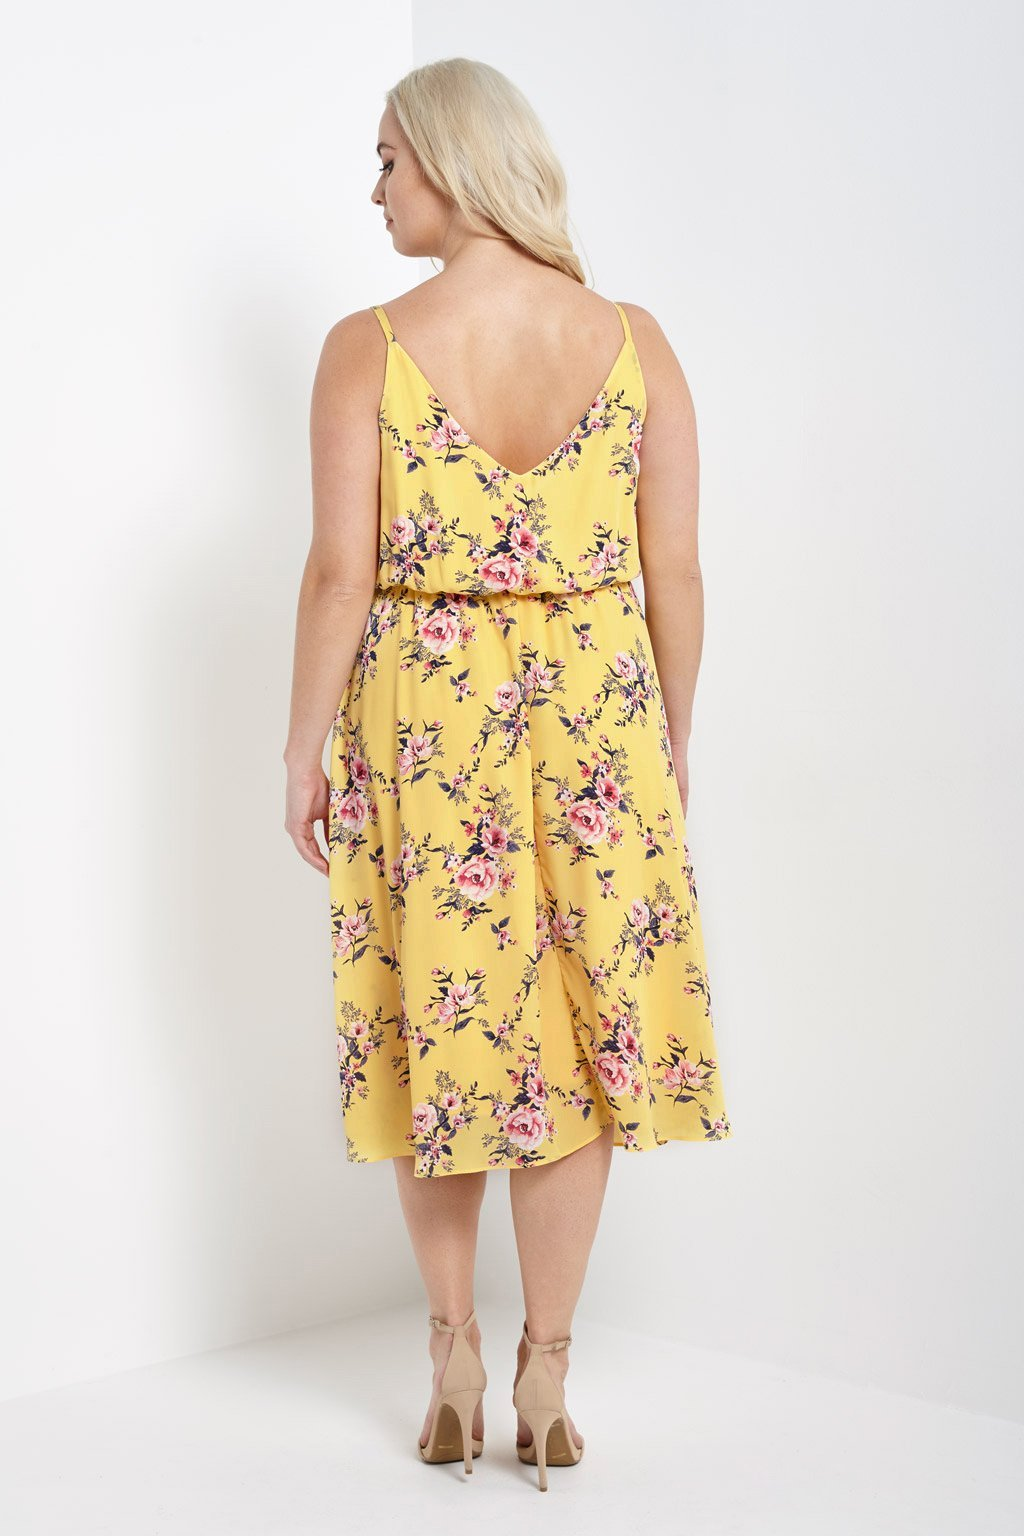 Poshsquare Plus Spring Blossoms Midi Dress Plus Size